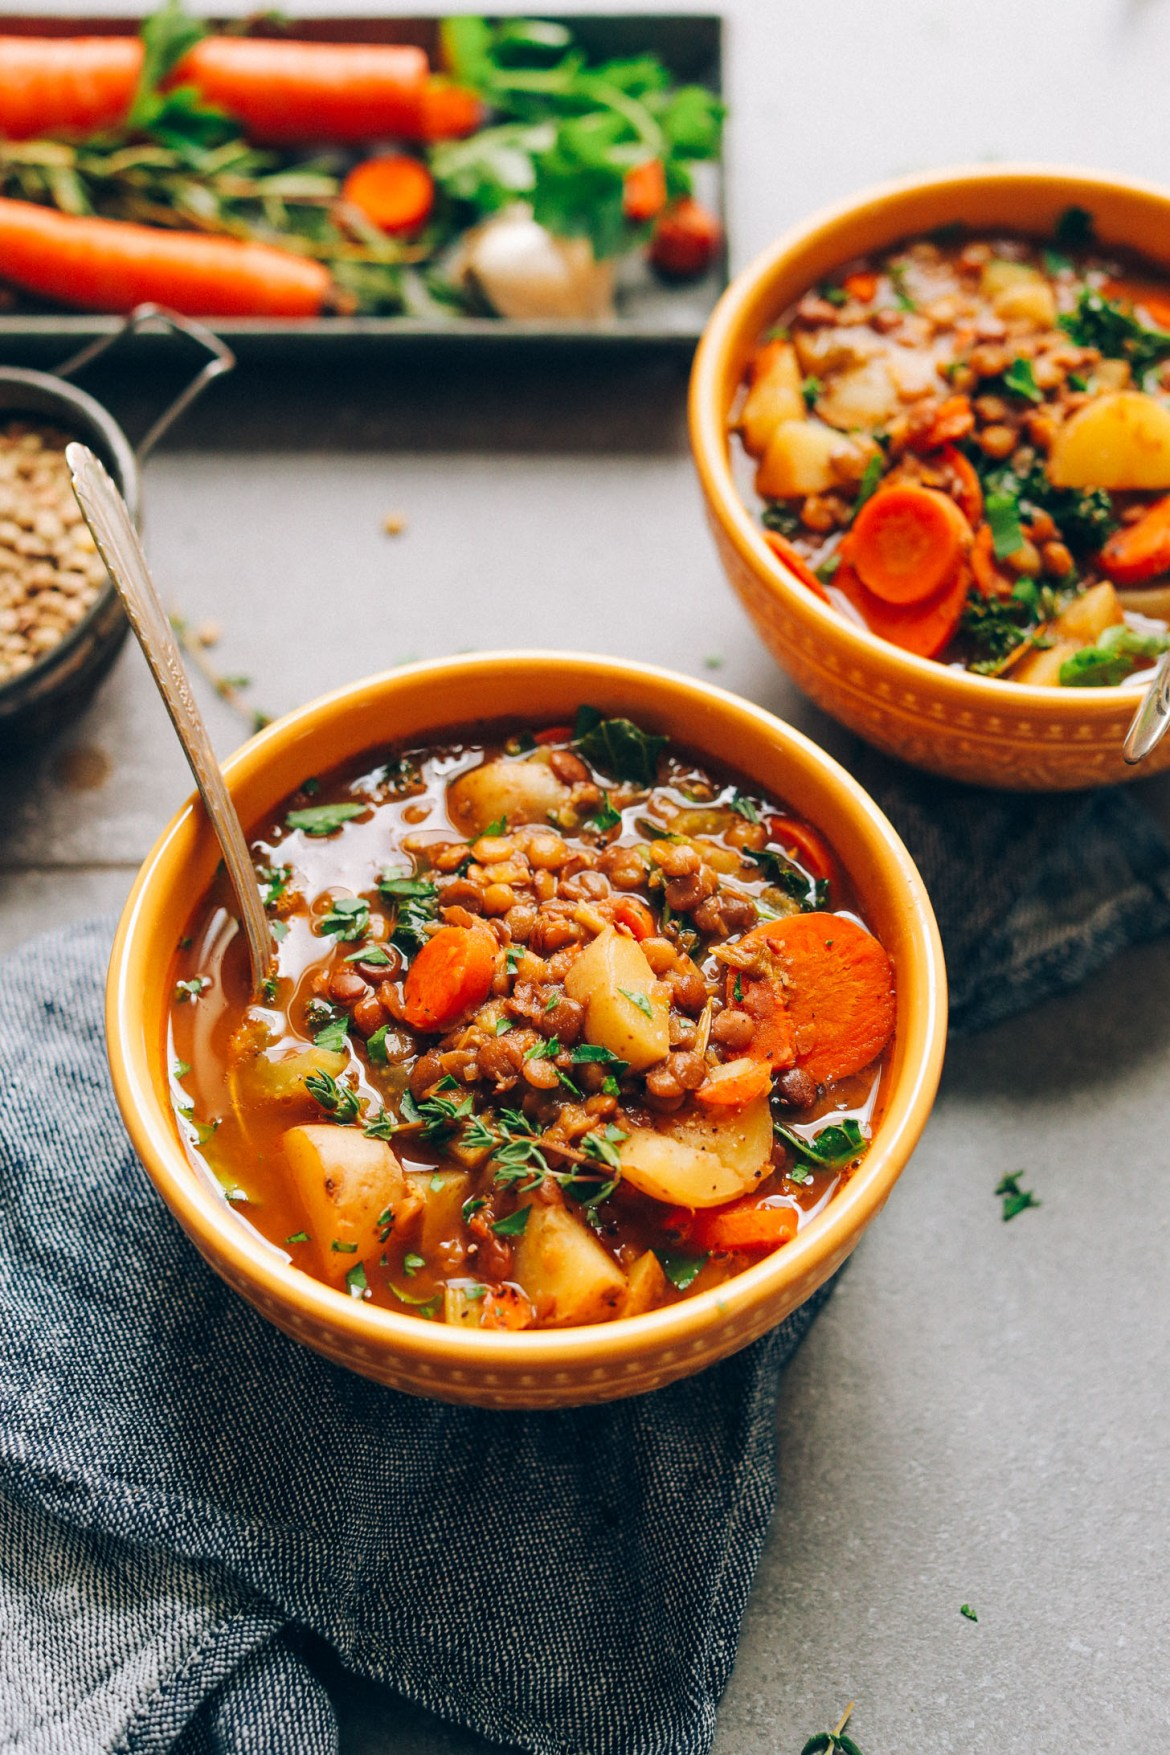 Bowl of our Everyday Lentil Soup recipe garnished with sprigs of fresh thyme